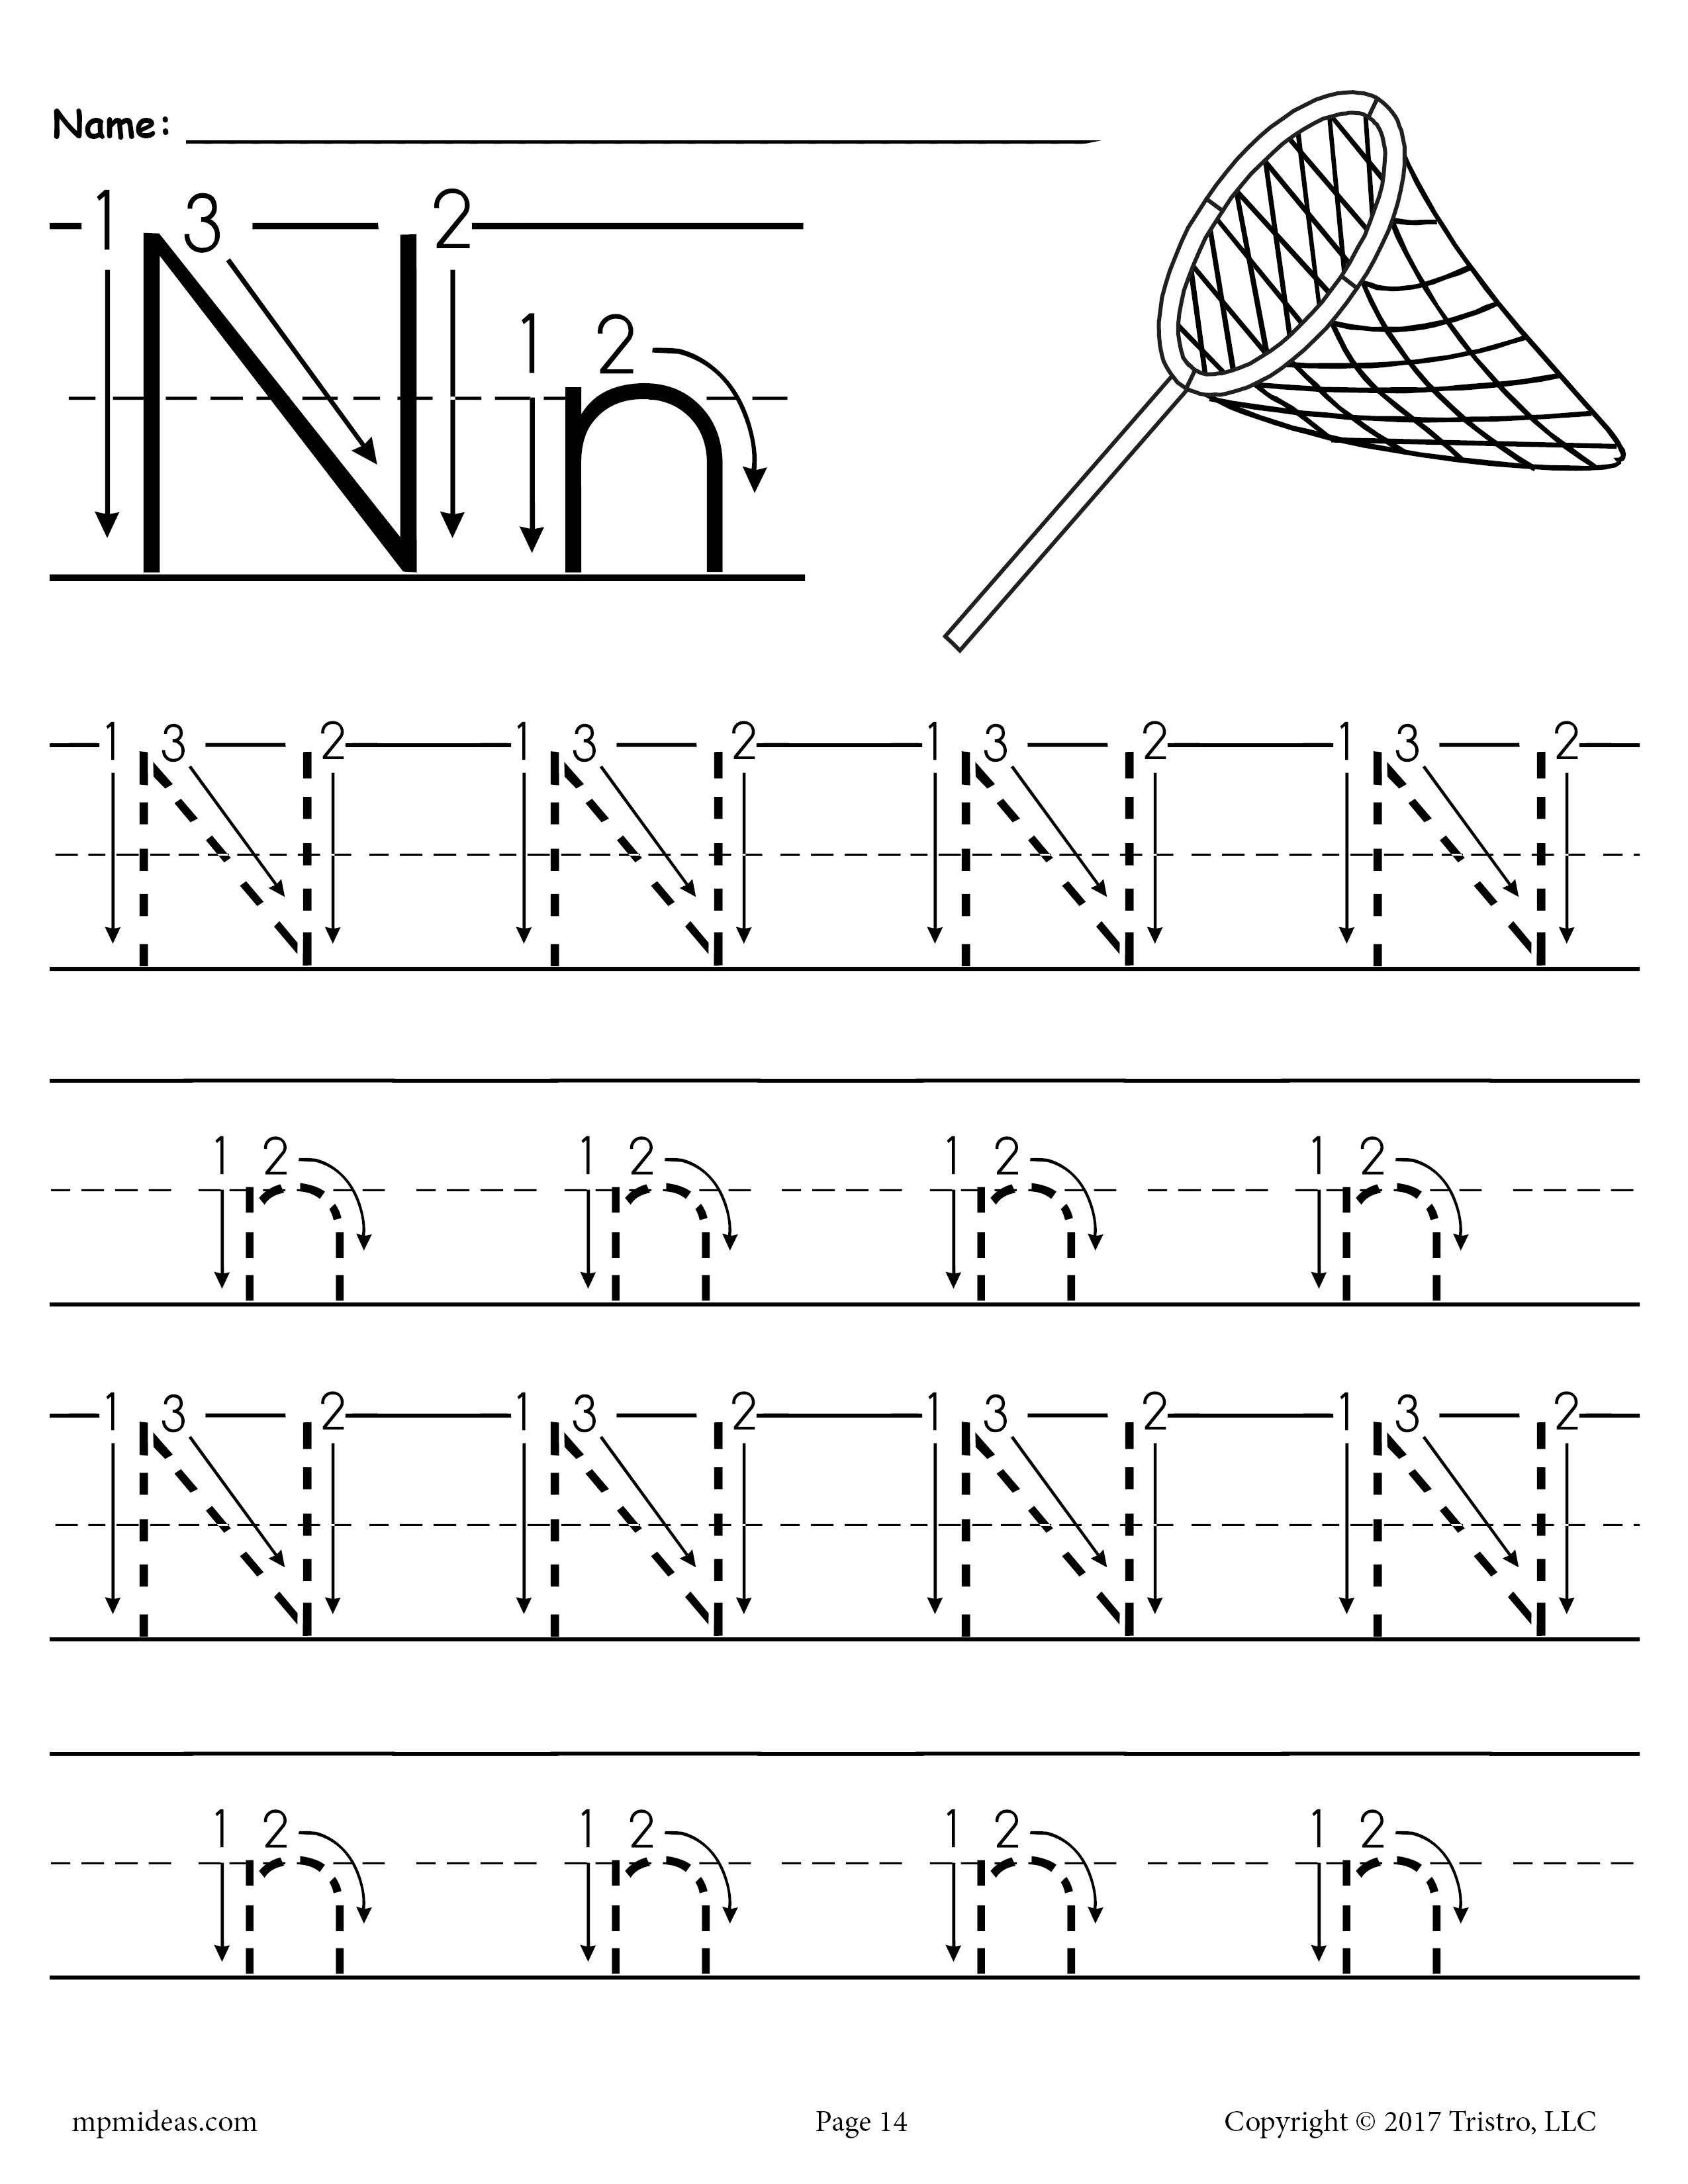 Printable Letter N Tracing Worksheet With Number And Arrow Guides Tracing Worksheets Preschool Letter N Worksheet Letter Tracing Printables [ 3300 x 2550 Pixel ]